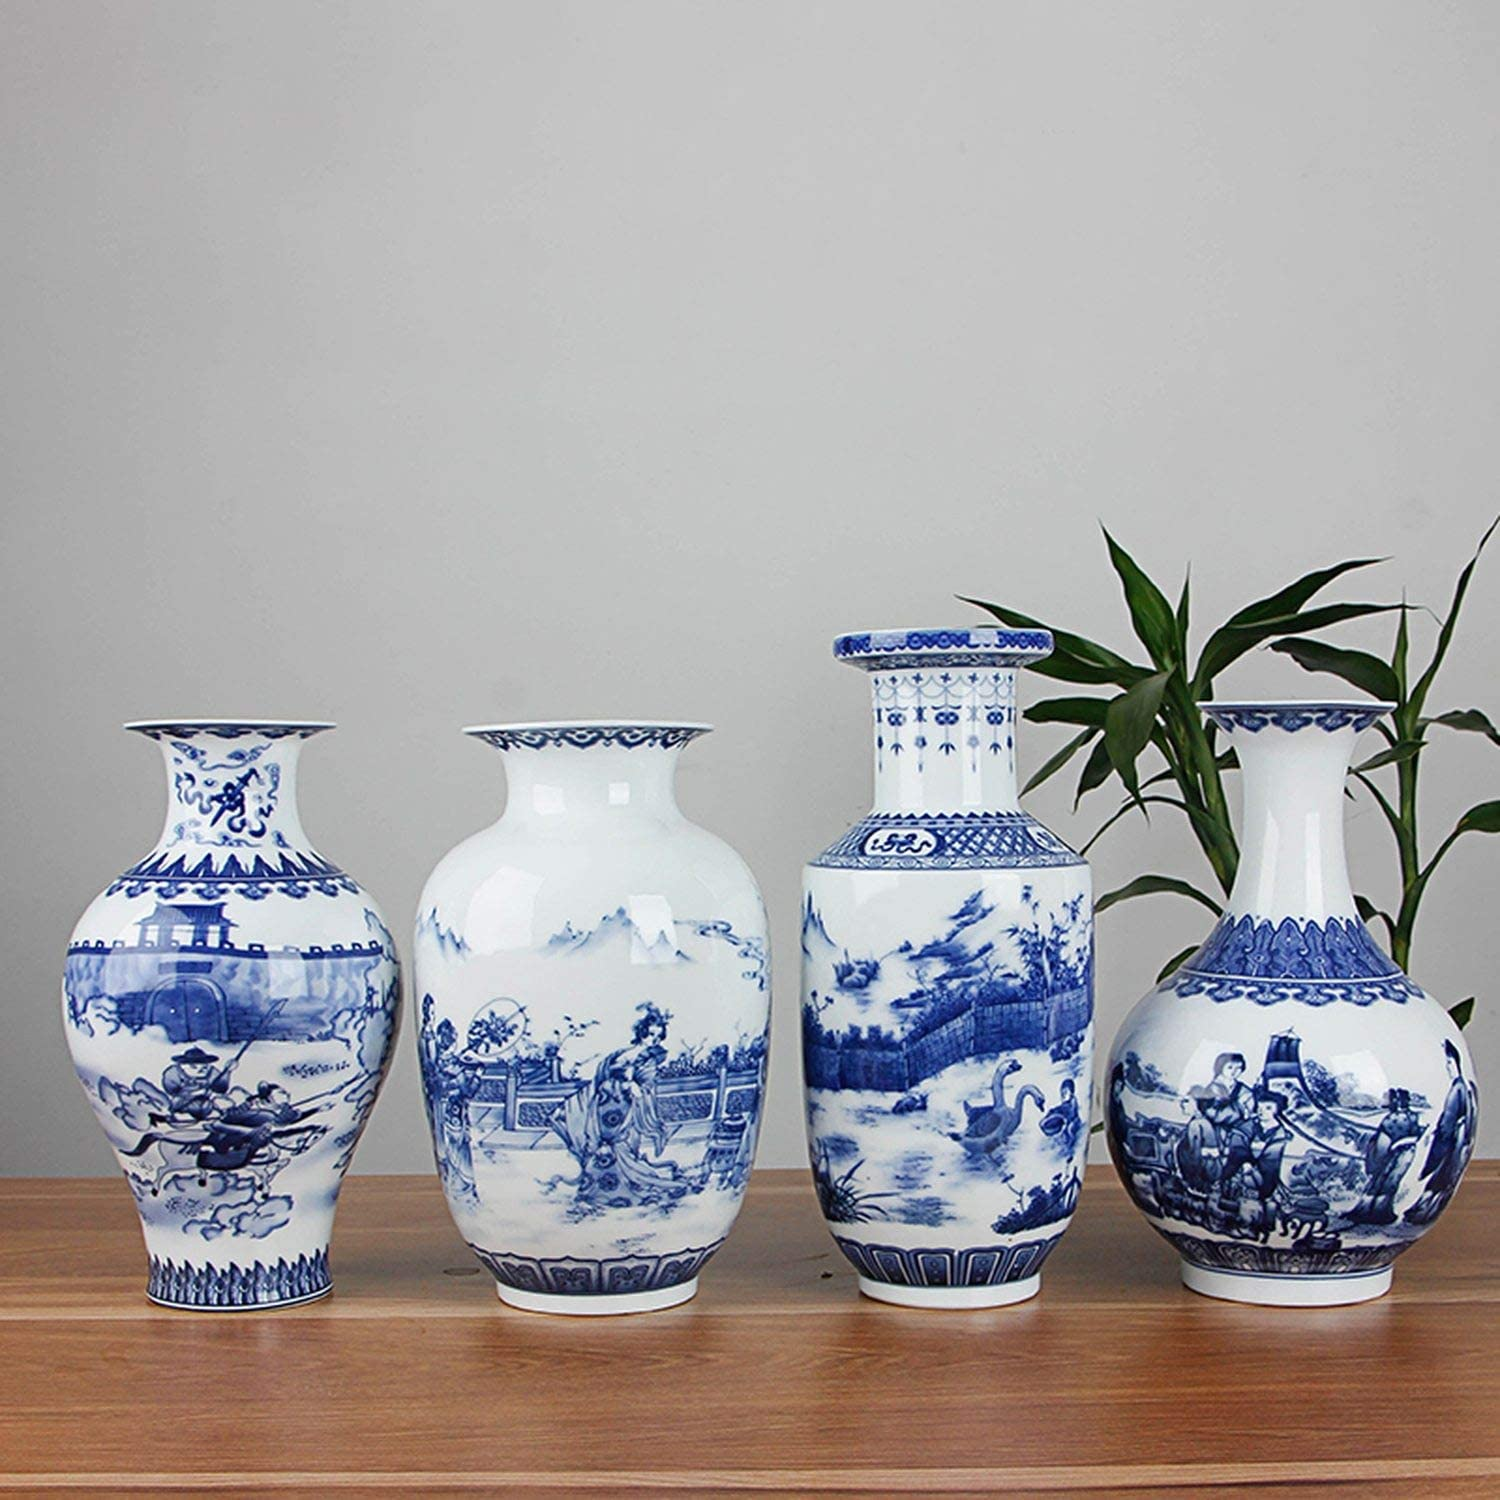 Classic Chinese Blue and White Ceramic Vase Antique Tabletop Porcelain Flower Vase for El Dining Room Decoration,A